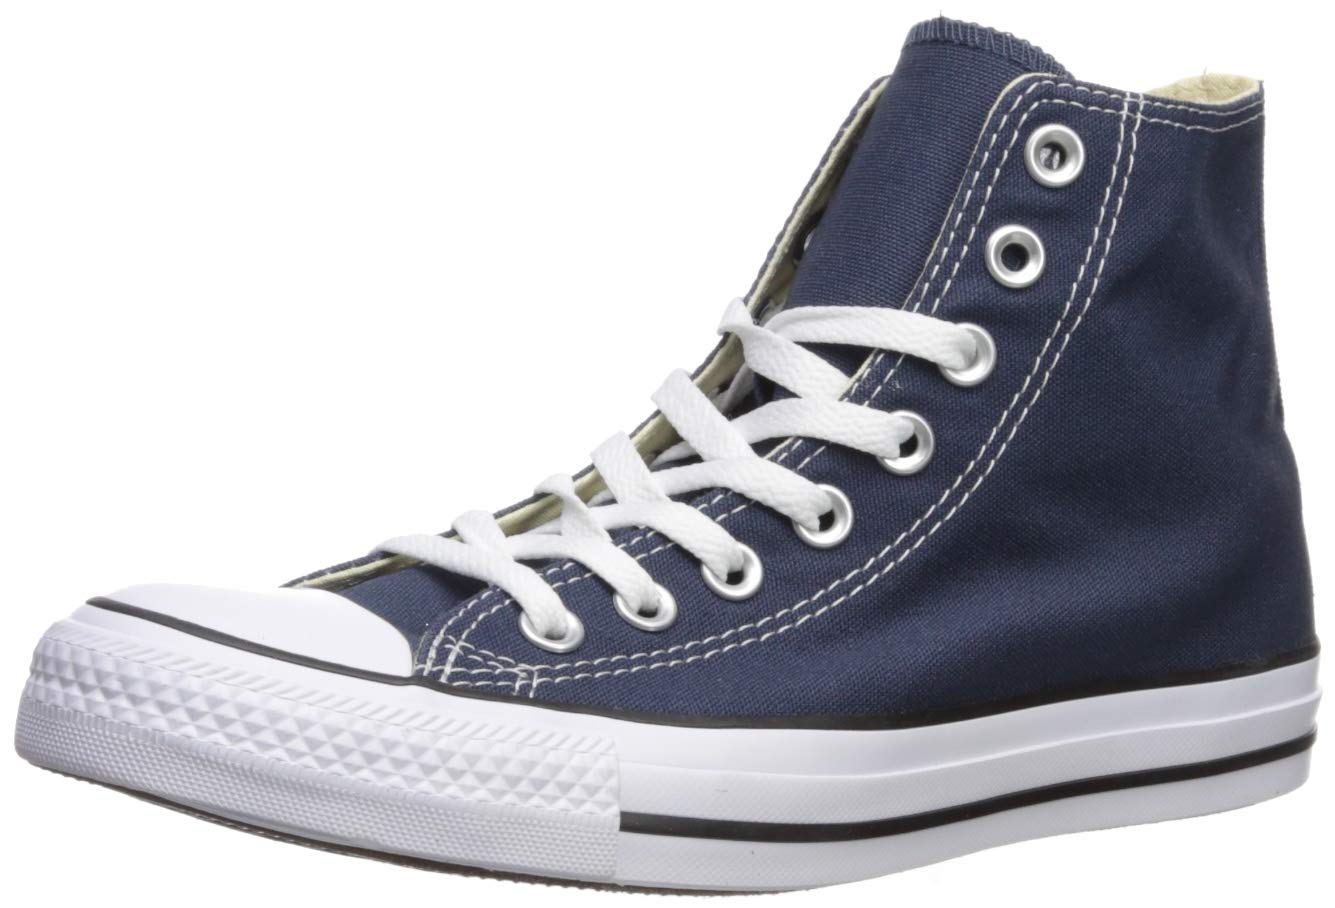 4c956a56d48e Converse Women s Chuck Taylor All Star High Top Sneaker product image